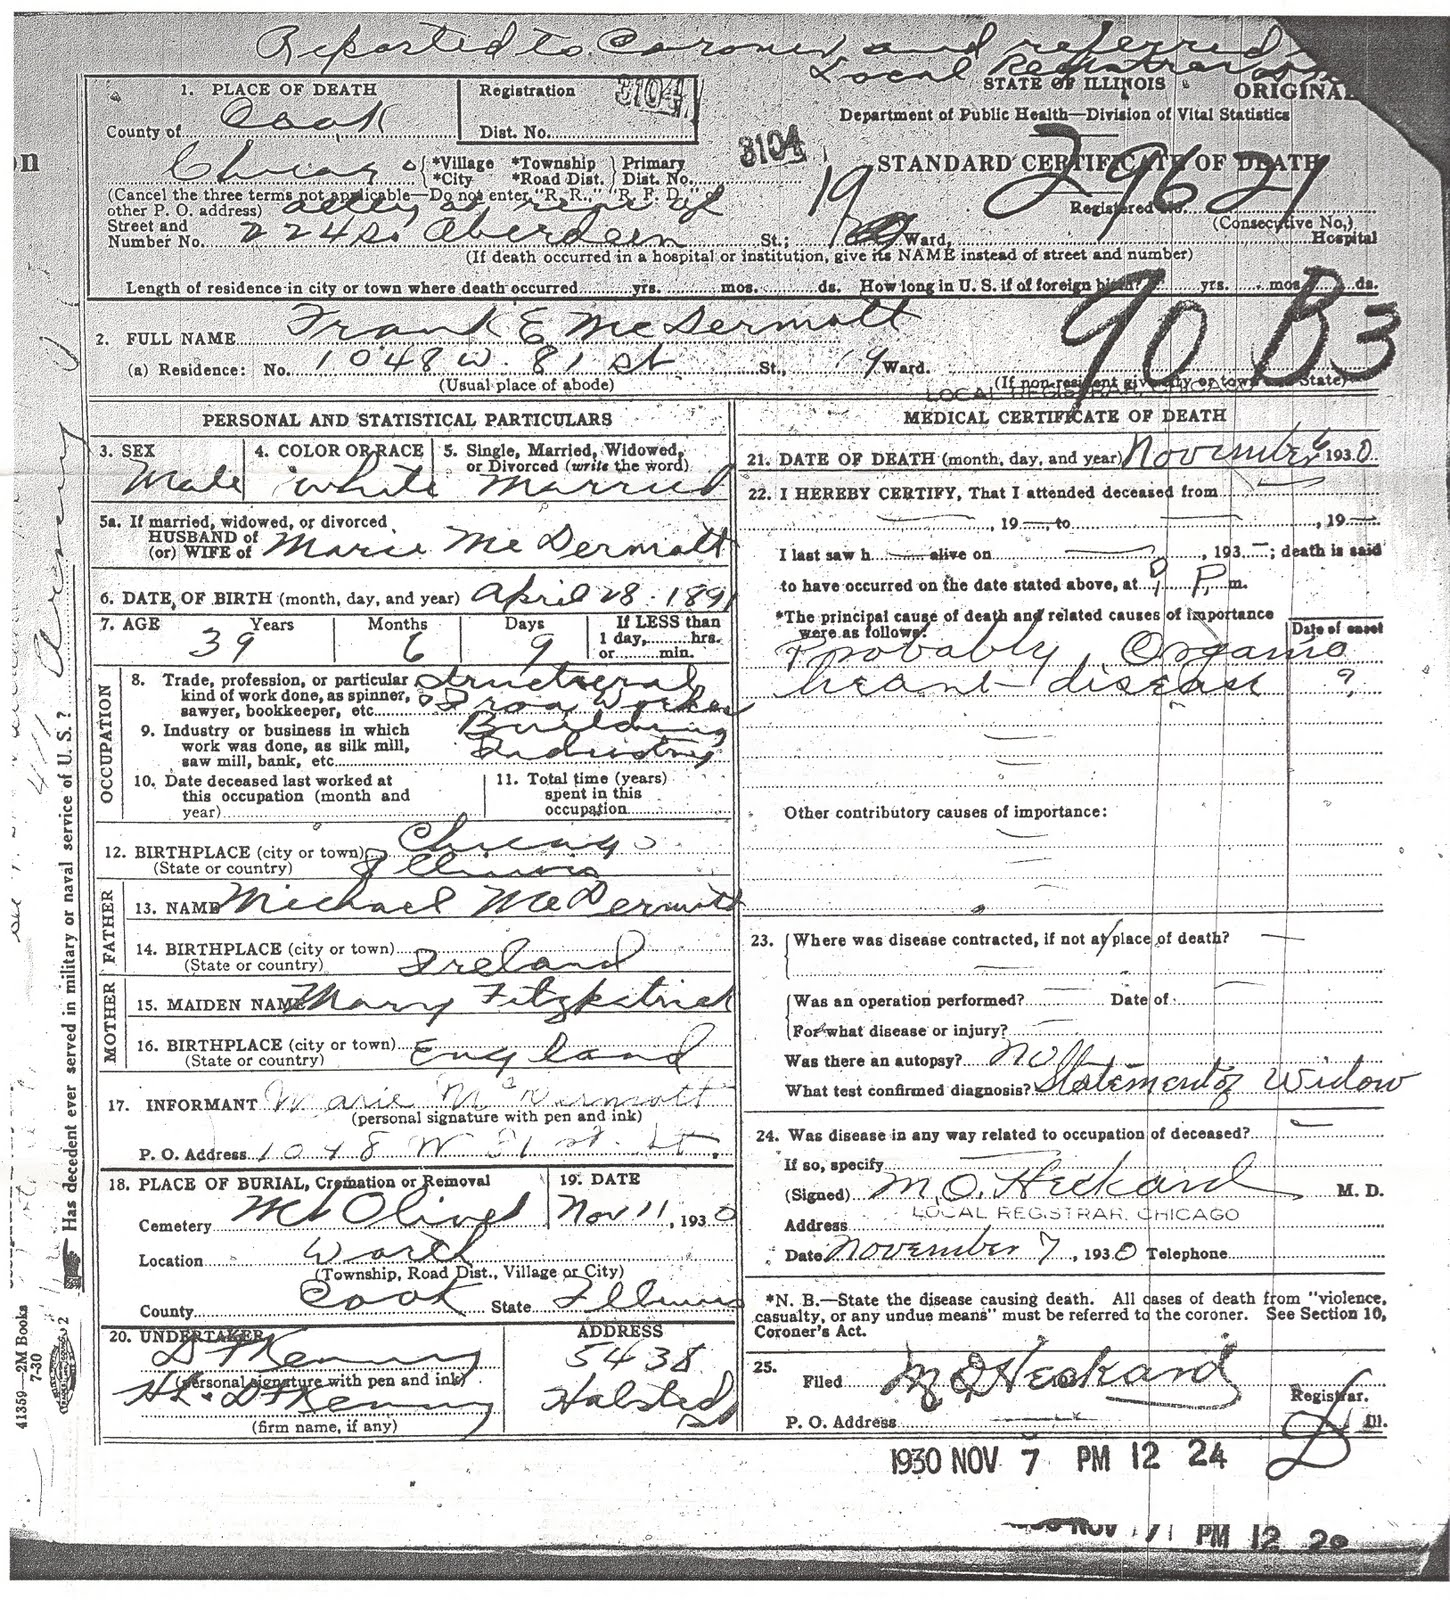 The mcdermott family line may 2010 the cook county death certificate for frank mcdermott 1betcityfo Image collections